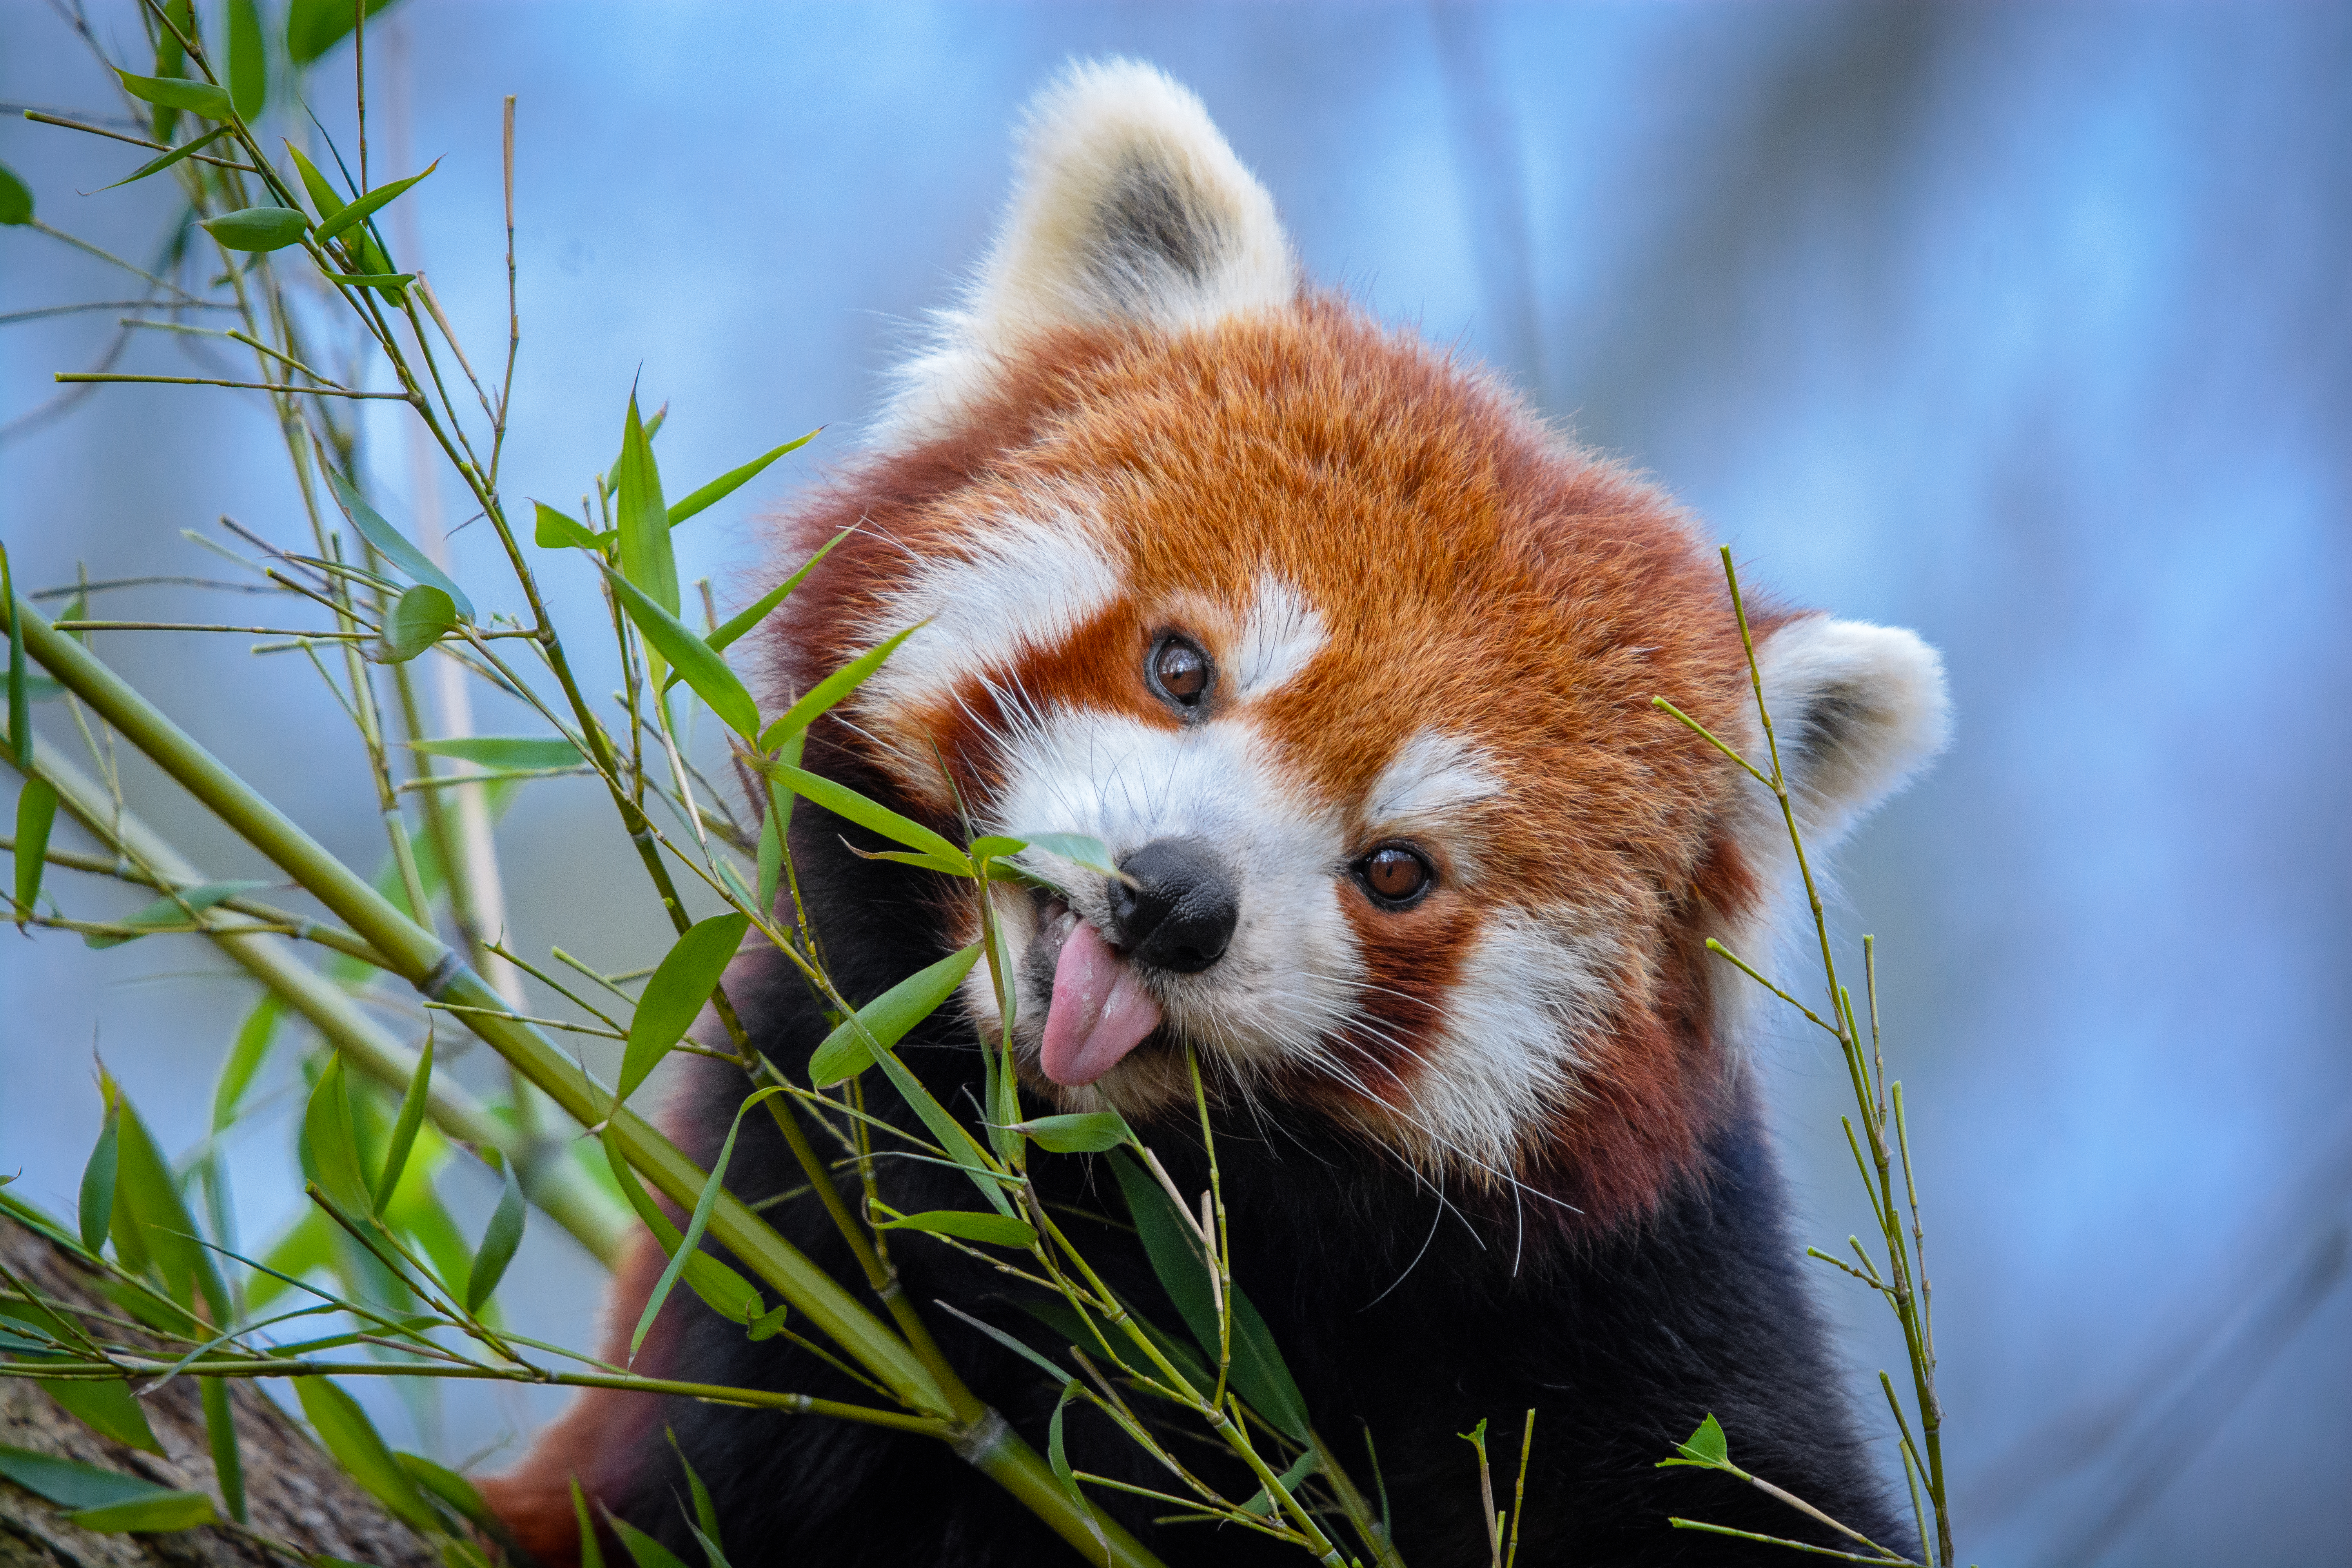 107439 download wallpaper Animals, Little Panda, Small Panda, Protruding Tongue, Tongue Stuck Out, Nice, Sweetheart, Funny, Animal, Bamboo screensavers and pictures for free